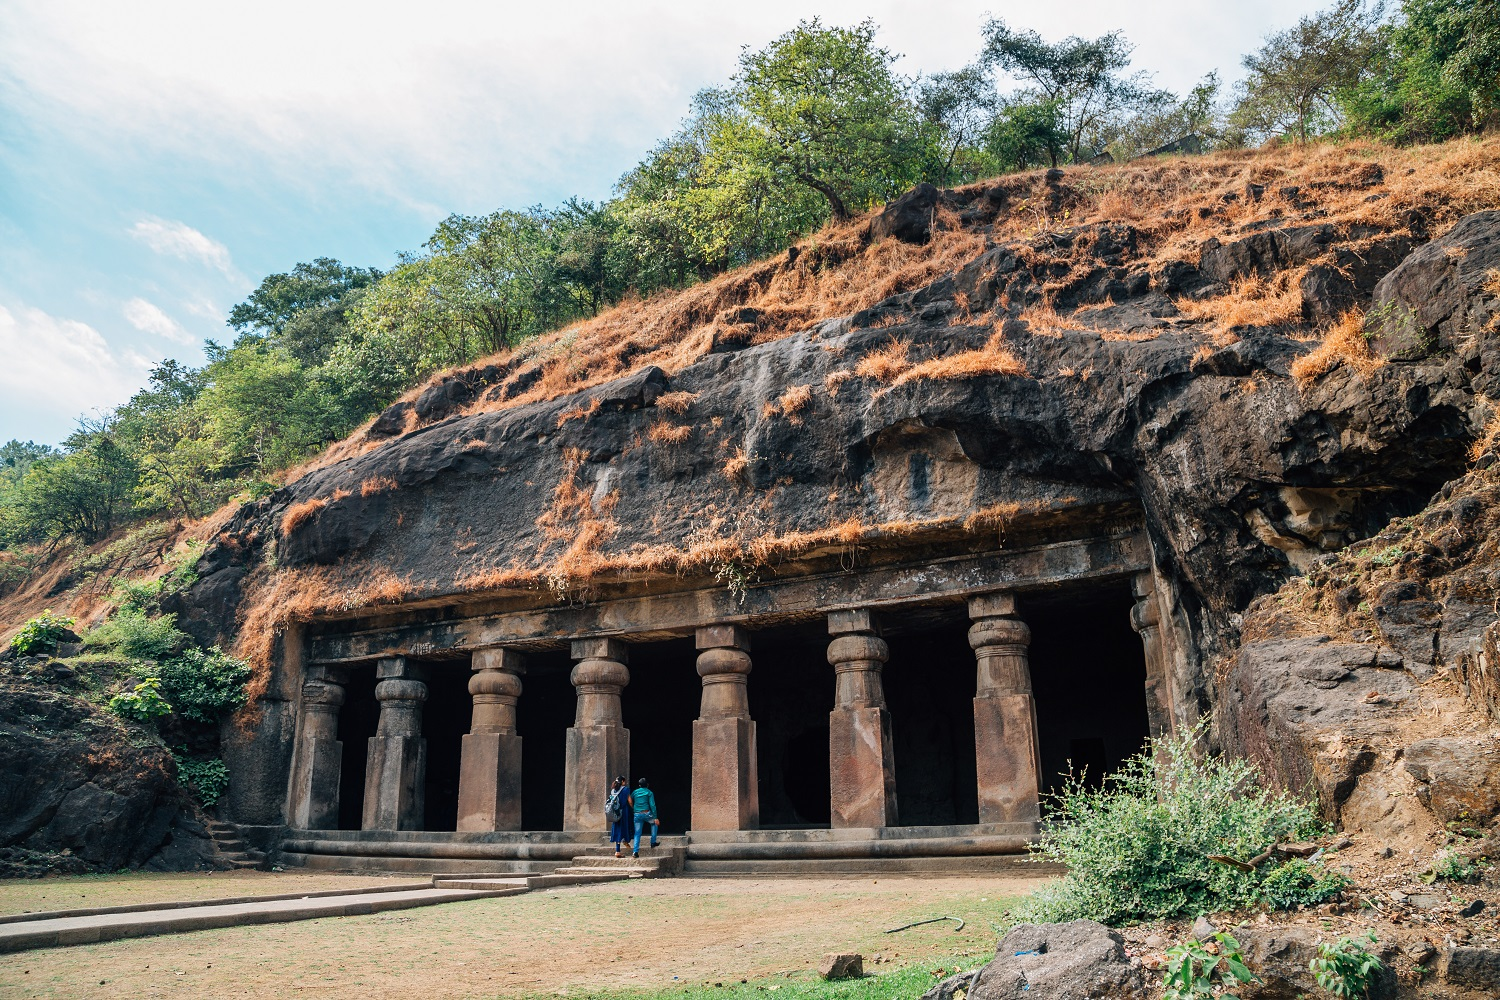 Elephanta Caves historical architecture in Mumbai, India